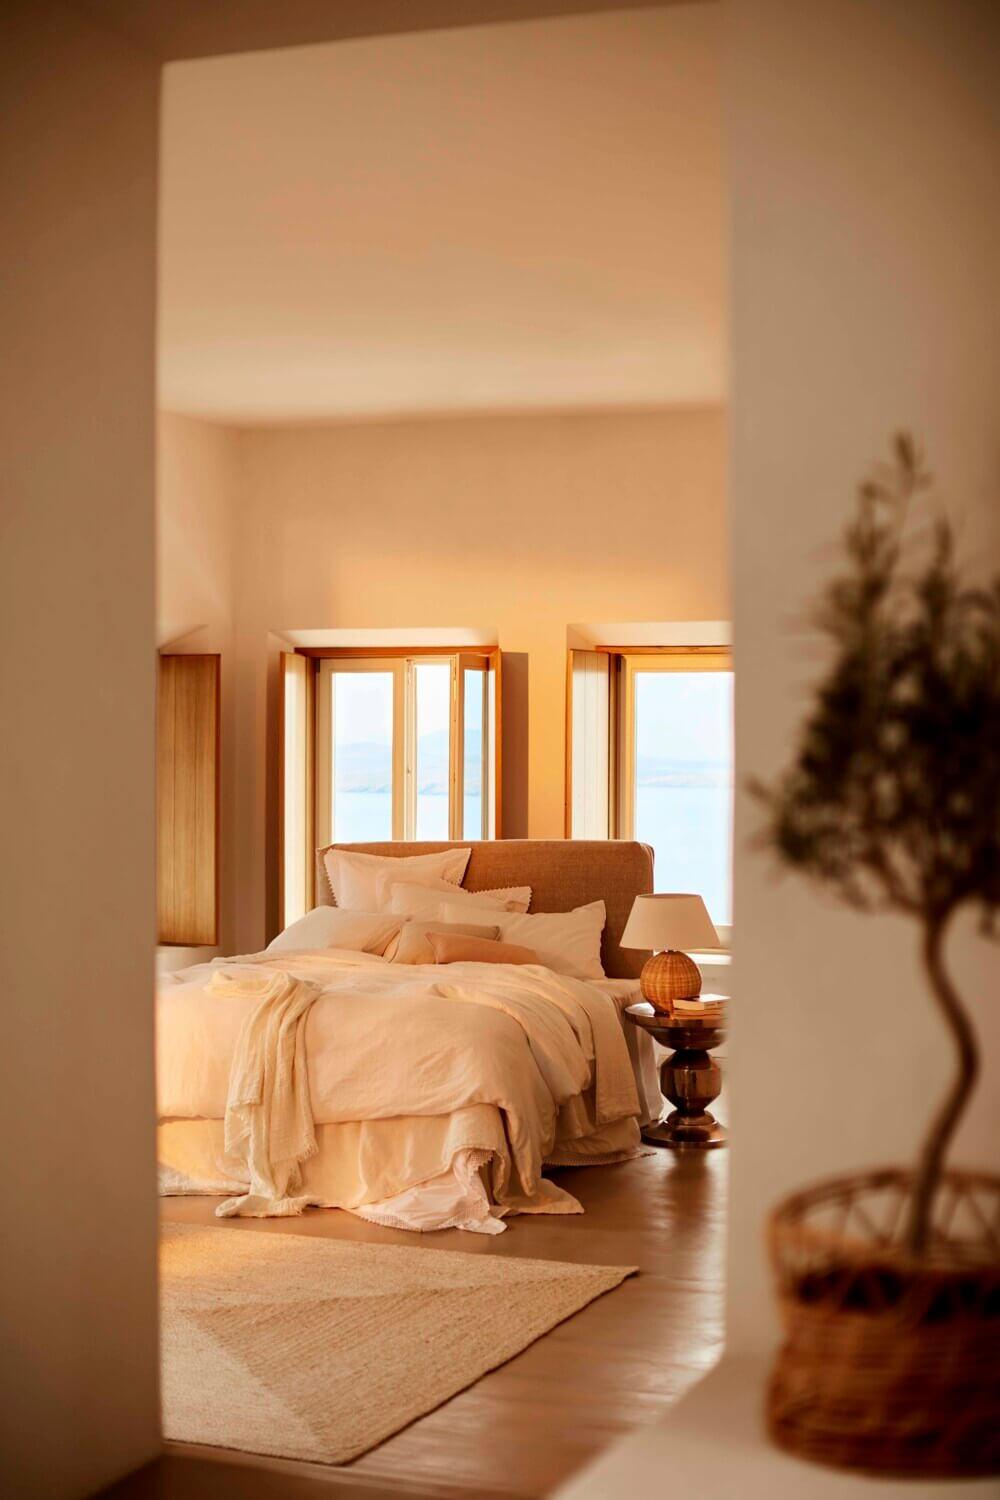 A Greek Villa Decorated in Warm Natural Tones by Zara Home